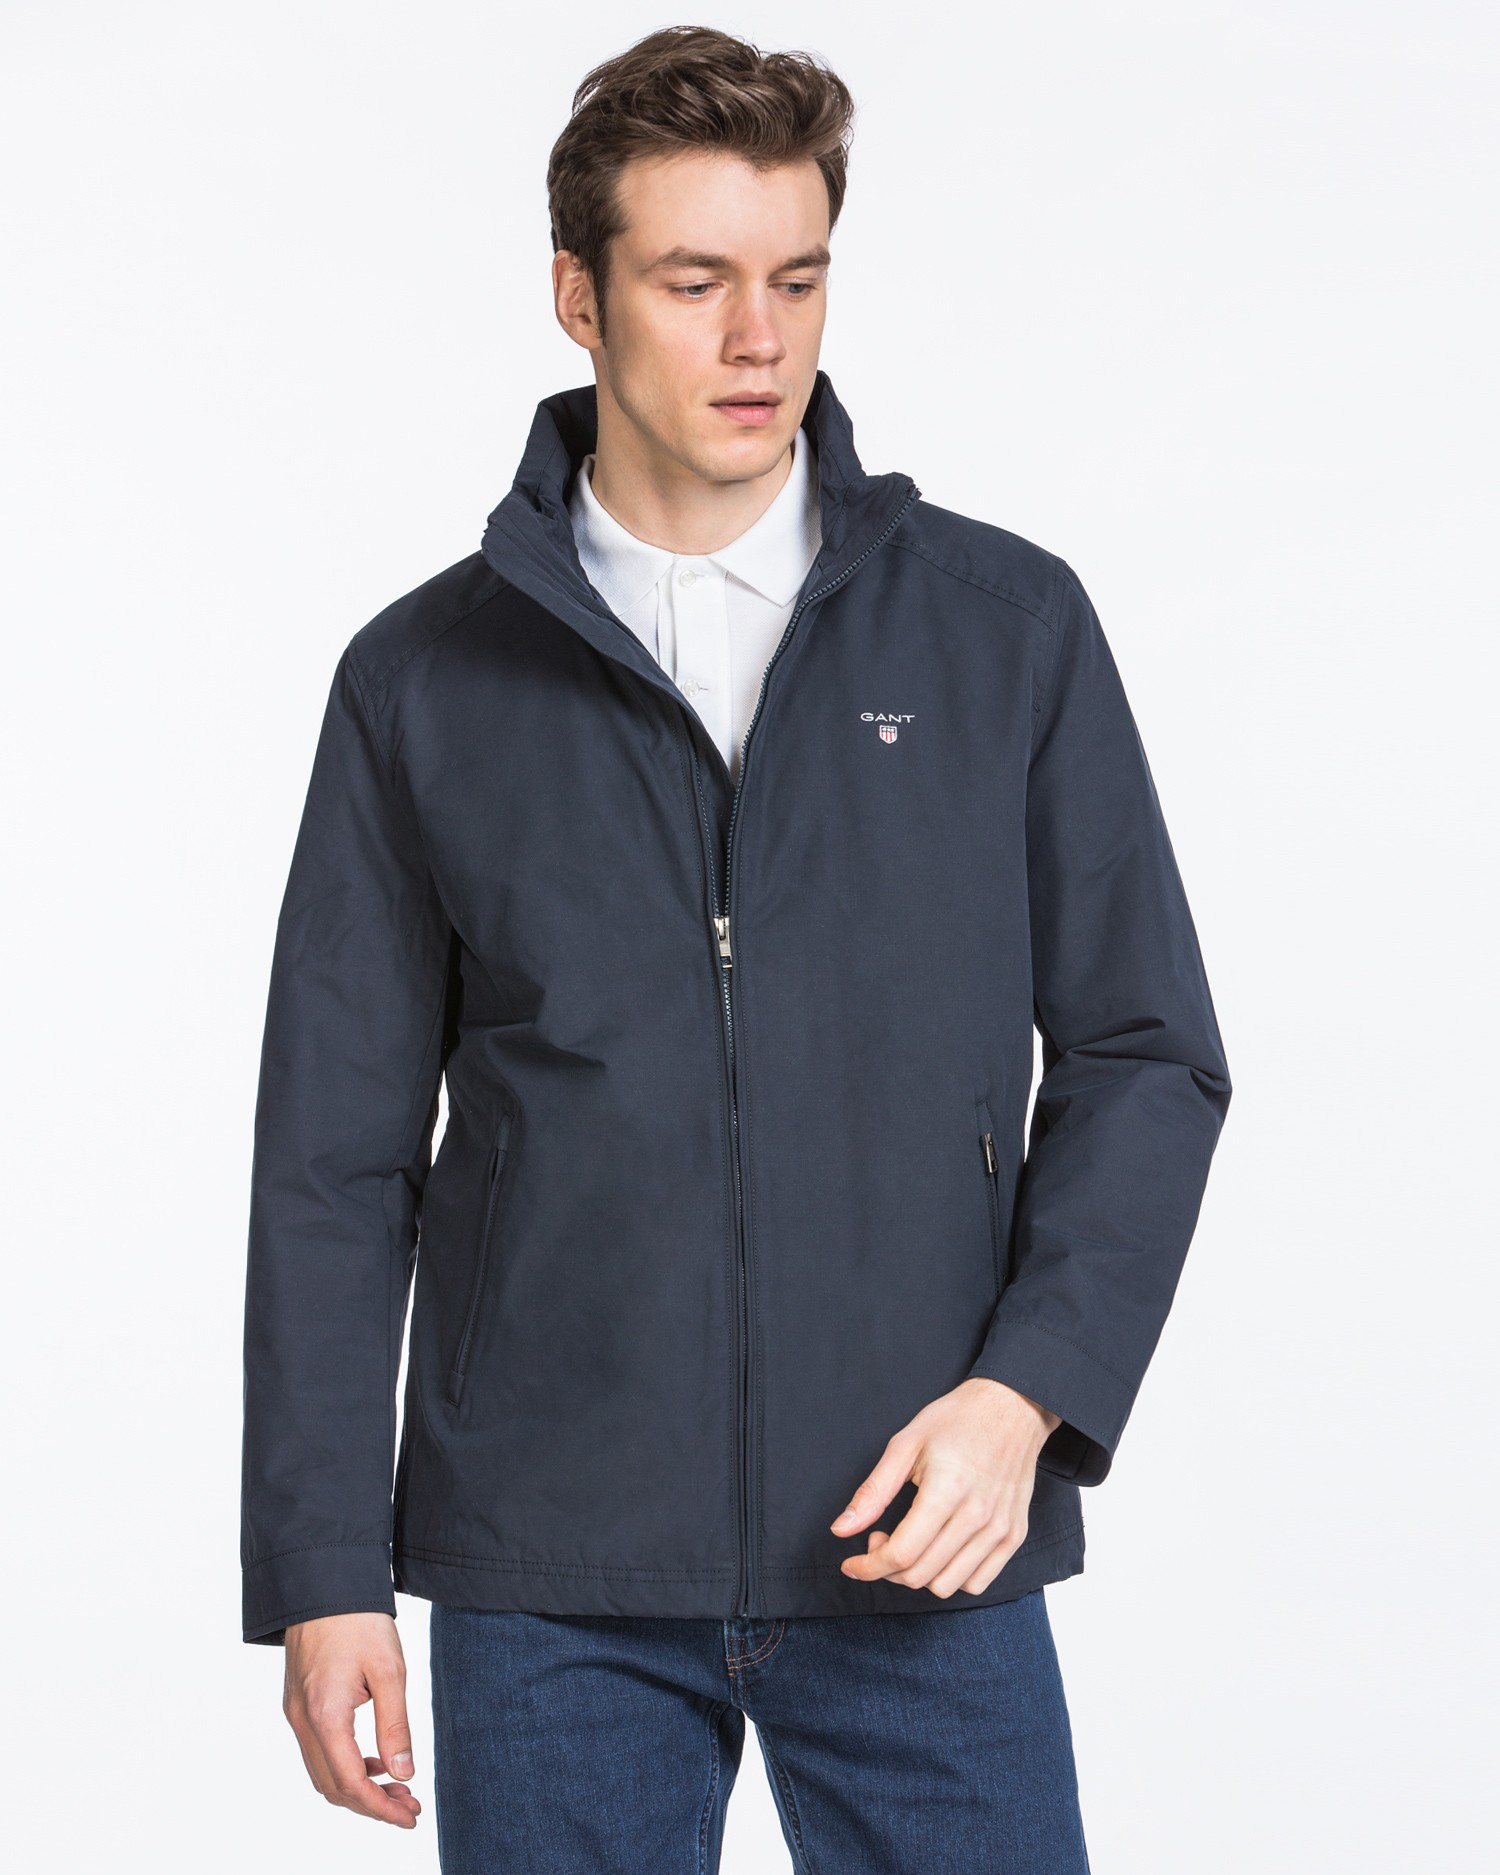 GANT Men's Midlength Jacket - 7001533